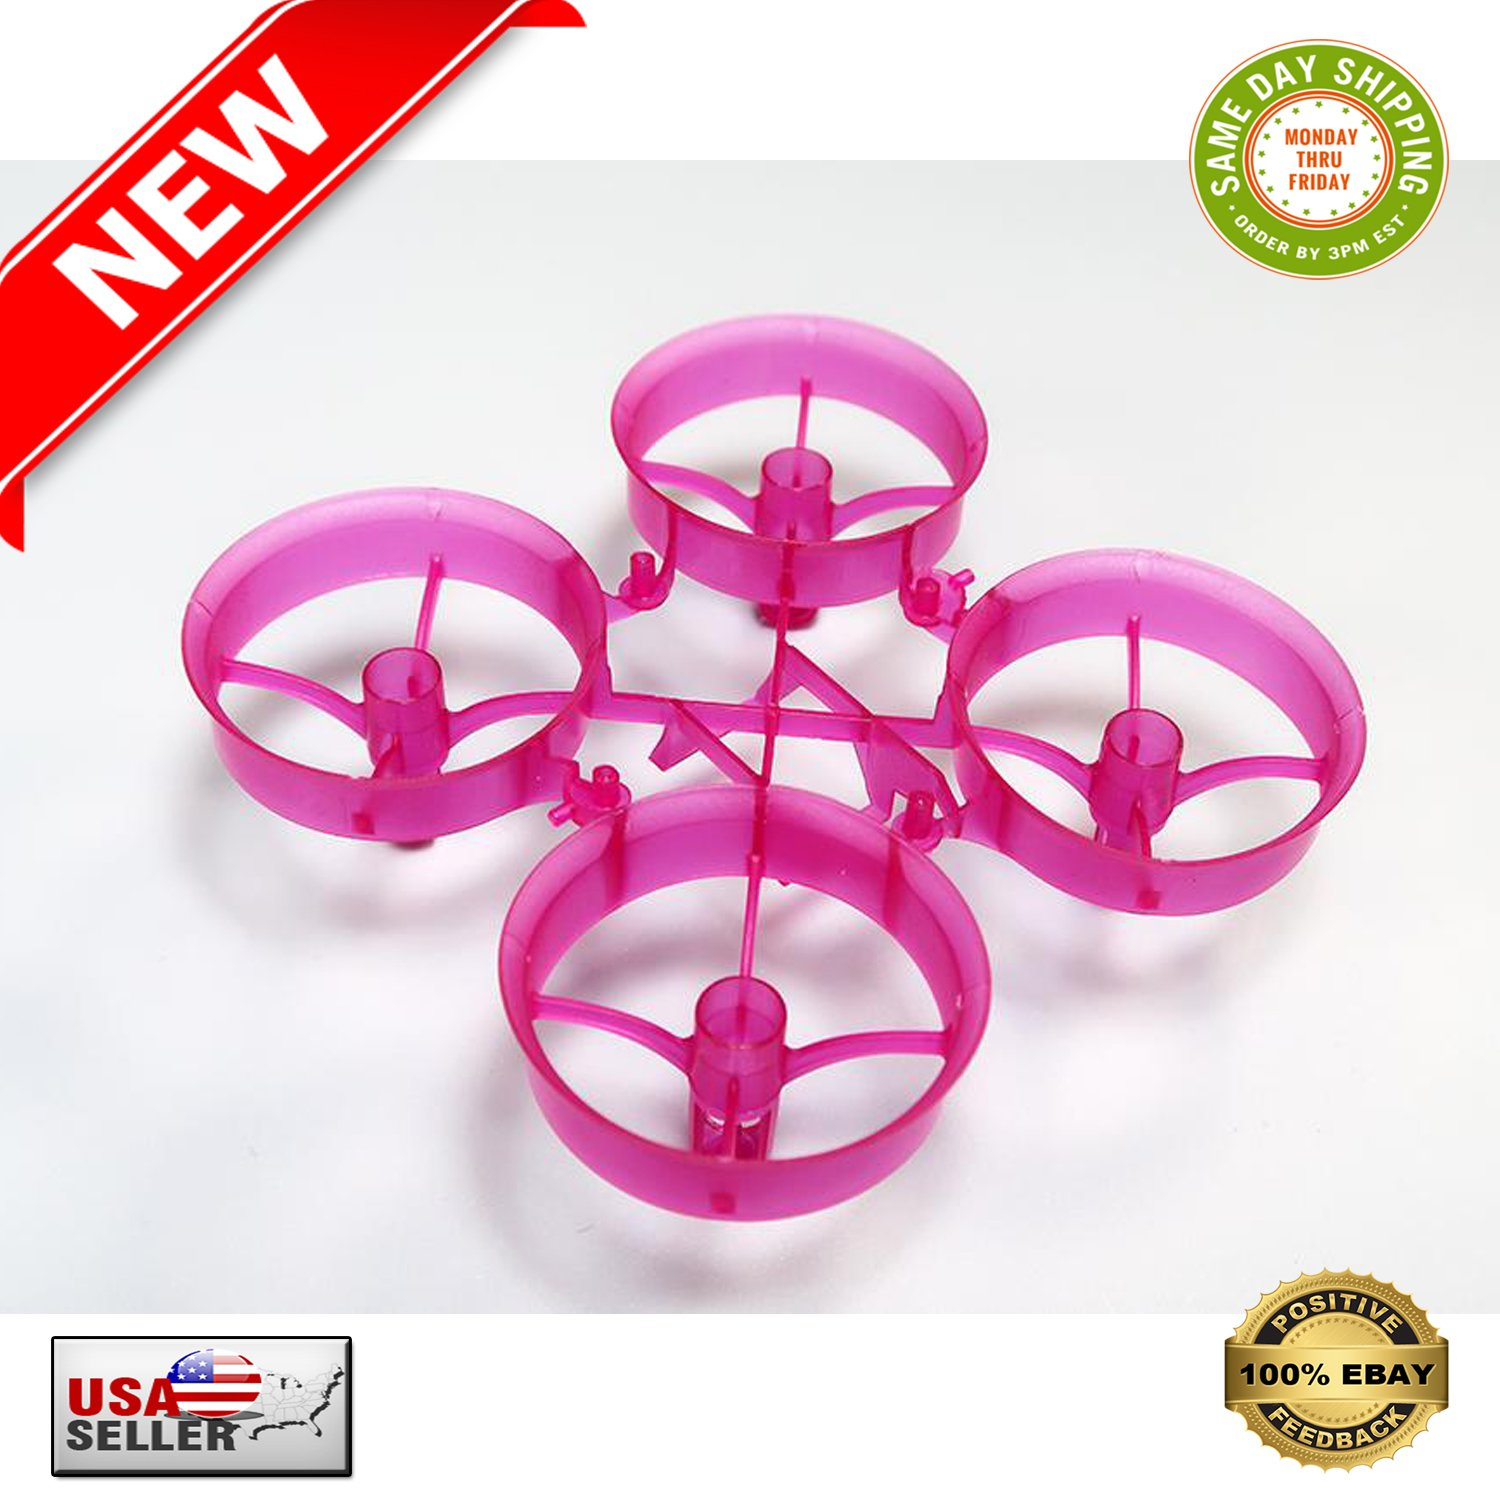 � New Bee Drone Blade Inductrix Purple Cockroach Super-Durable Upgraded Whoop Frame �